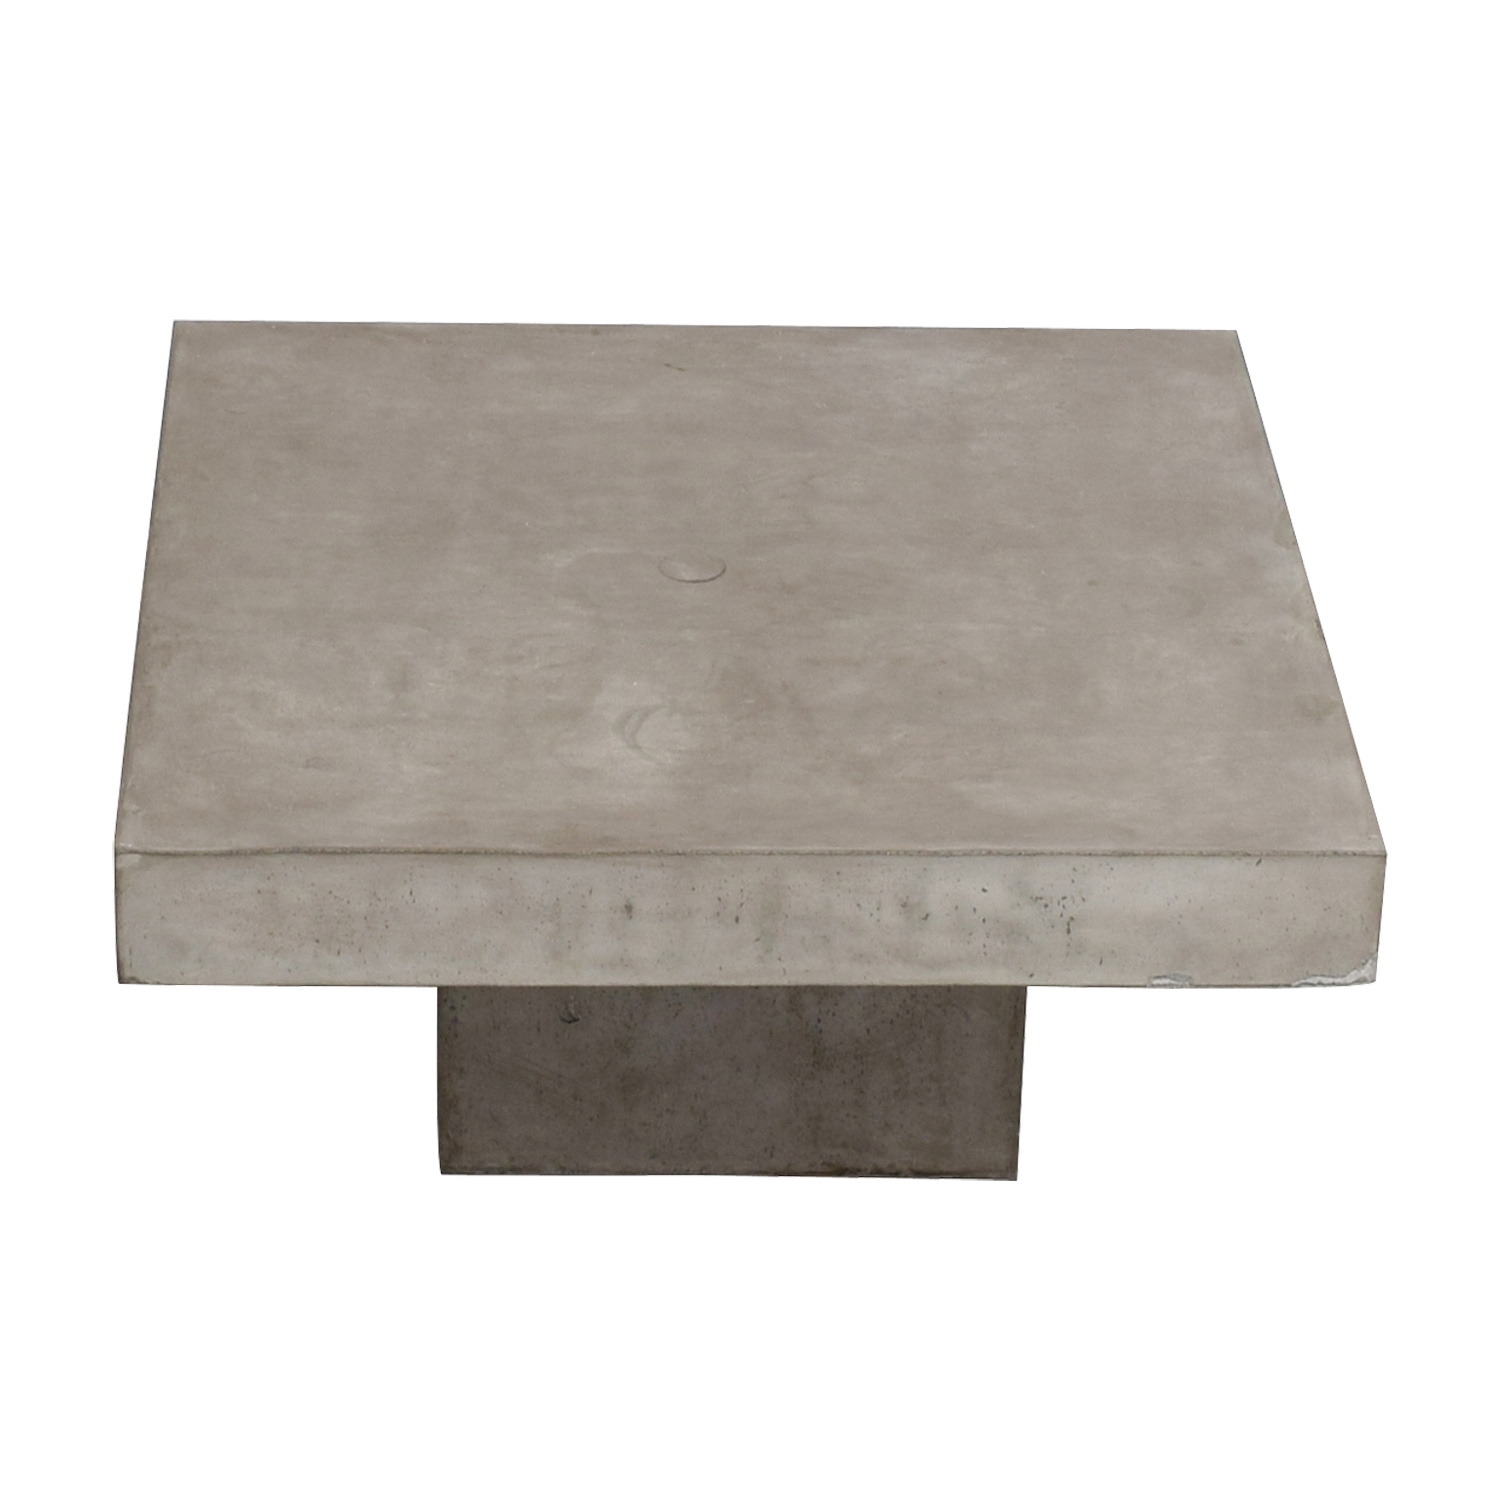 CB2 CB2 Concrete Coffee Table grey